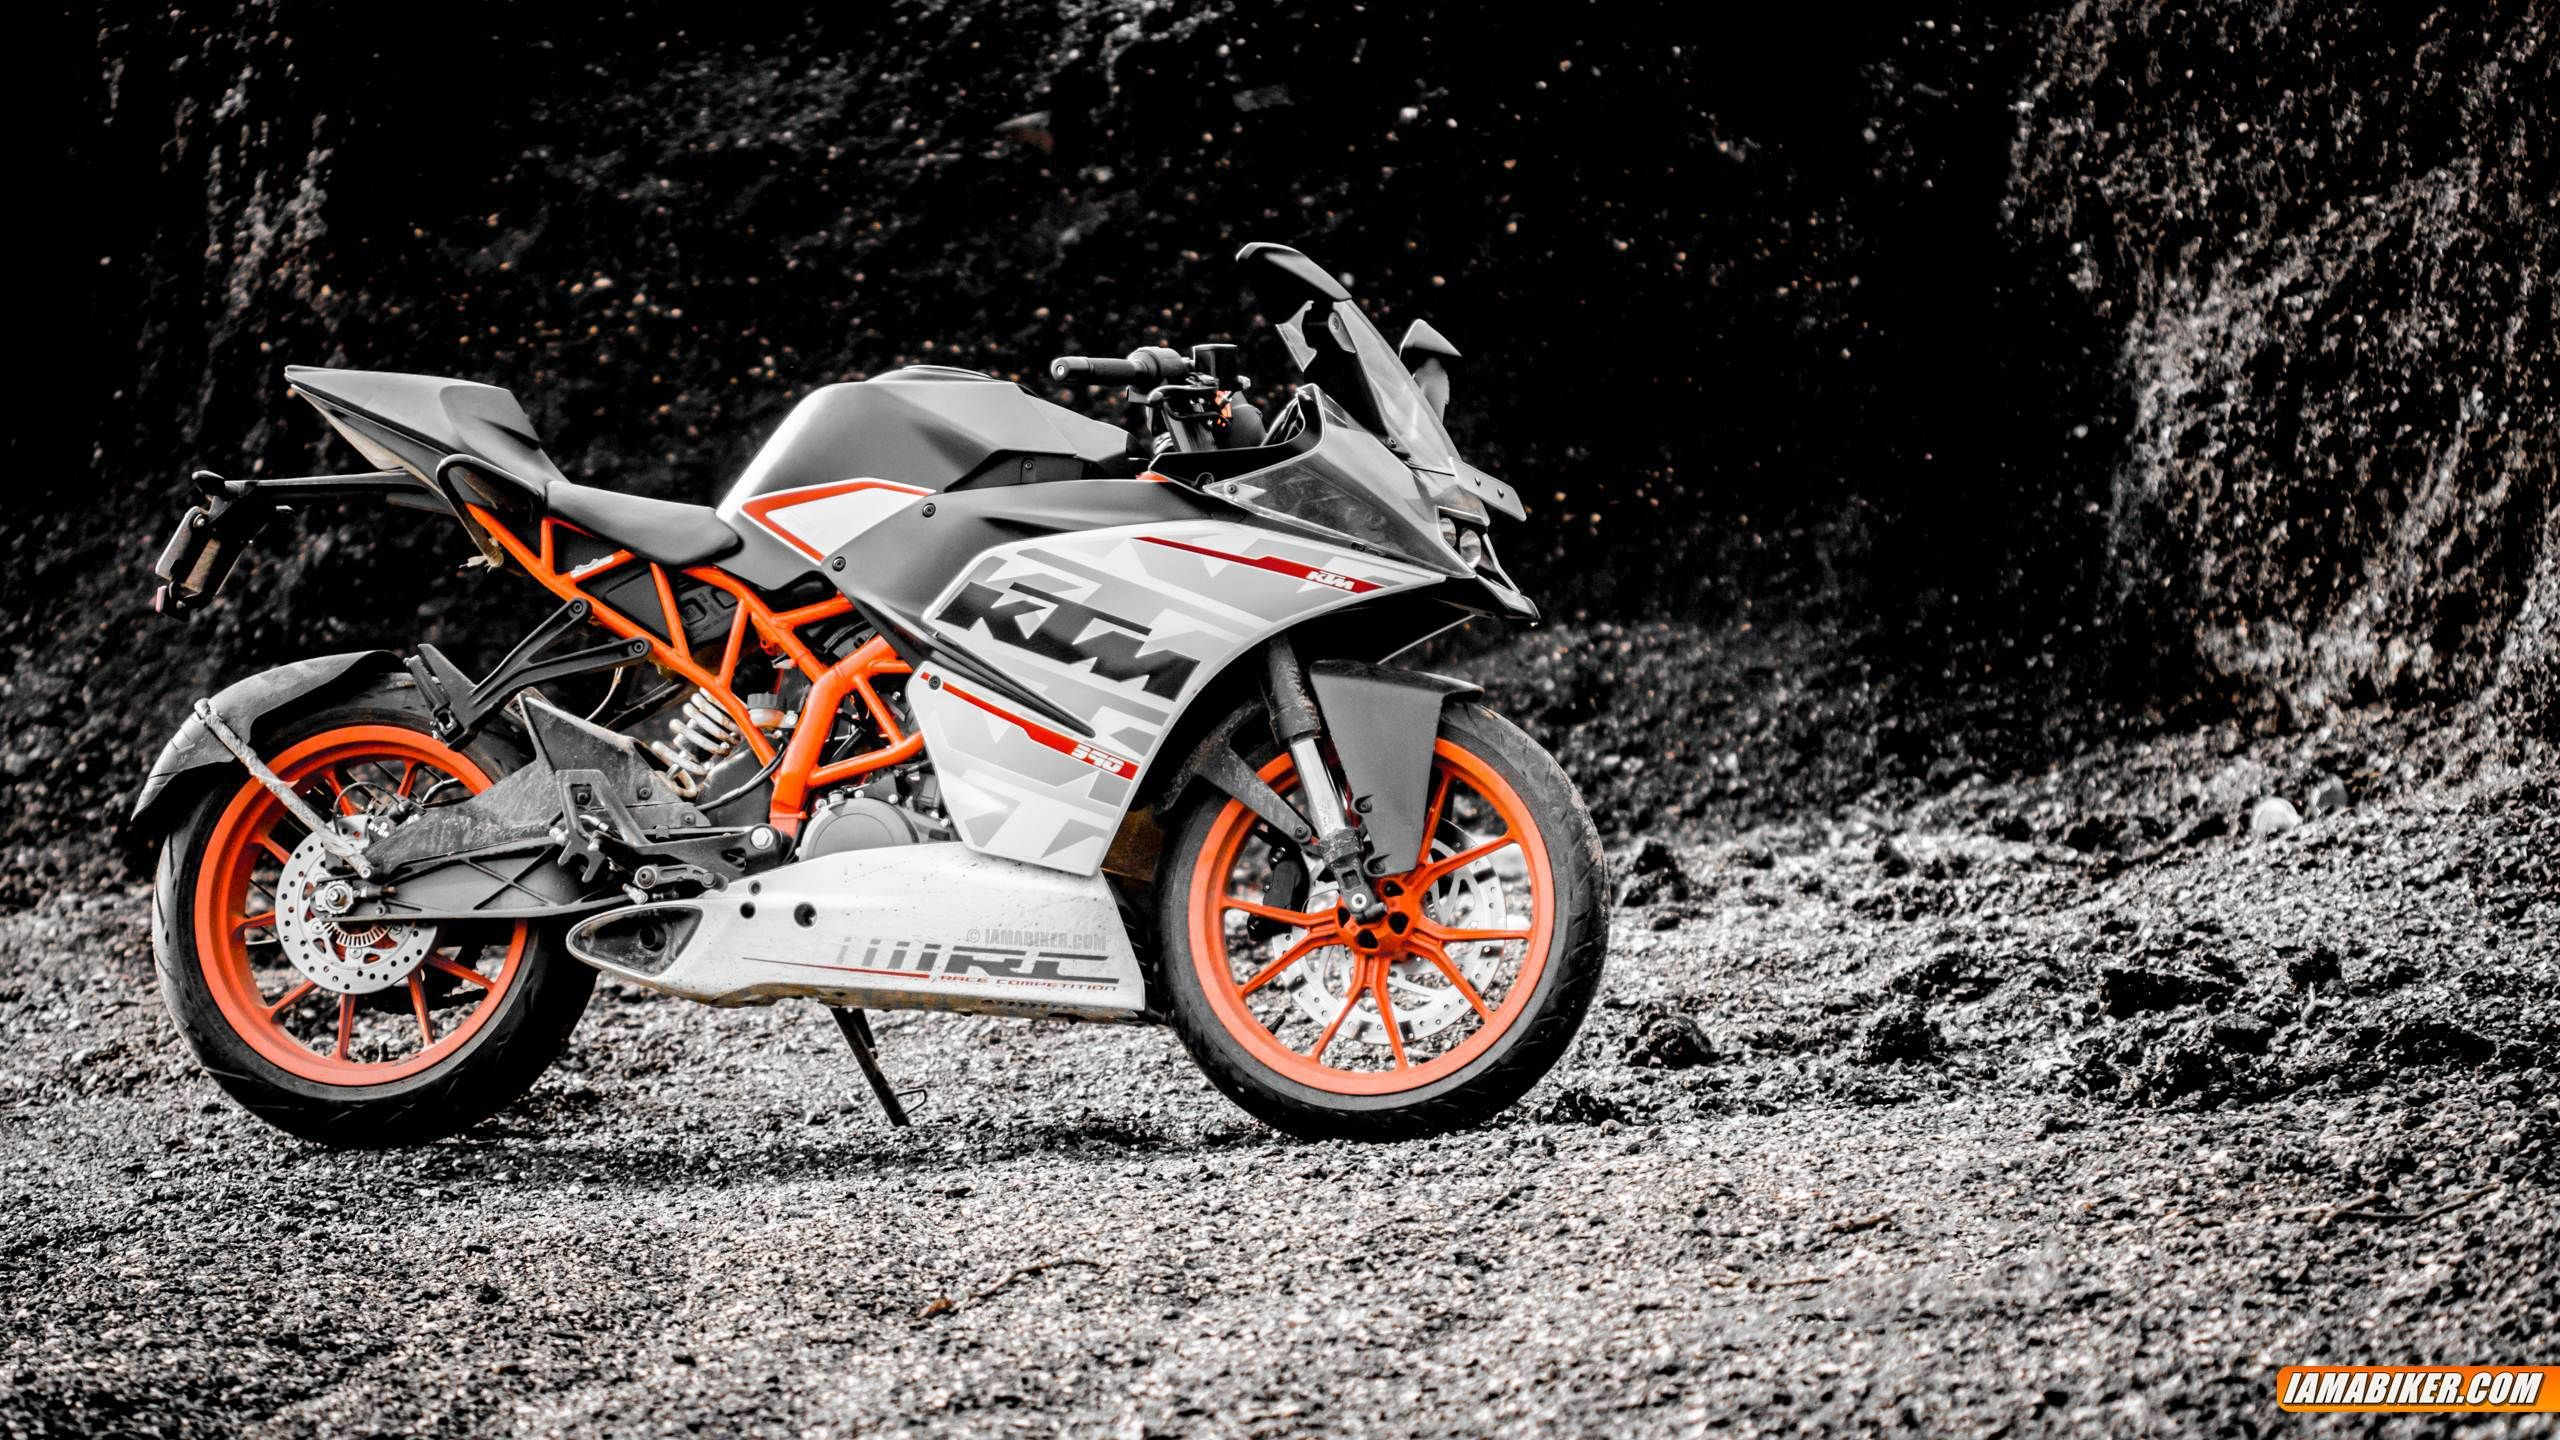 Ktm Rc 390 Hd Wallpapers Ktm Rc Ktm Motorcycle Wallpaper